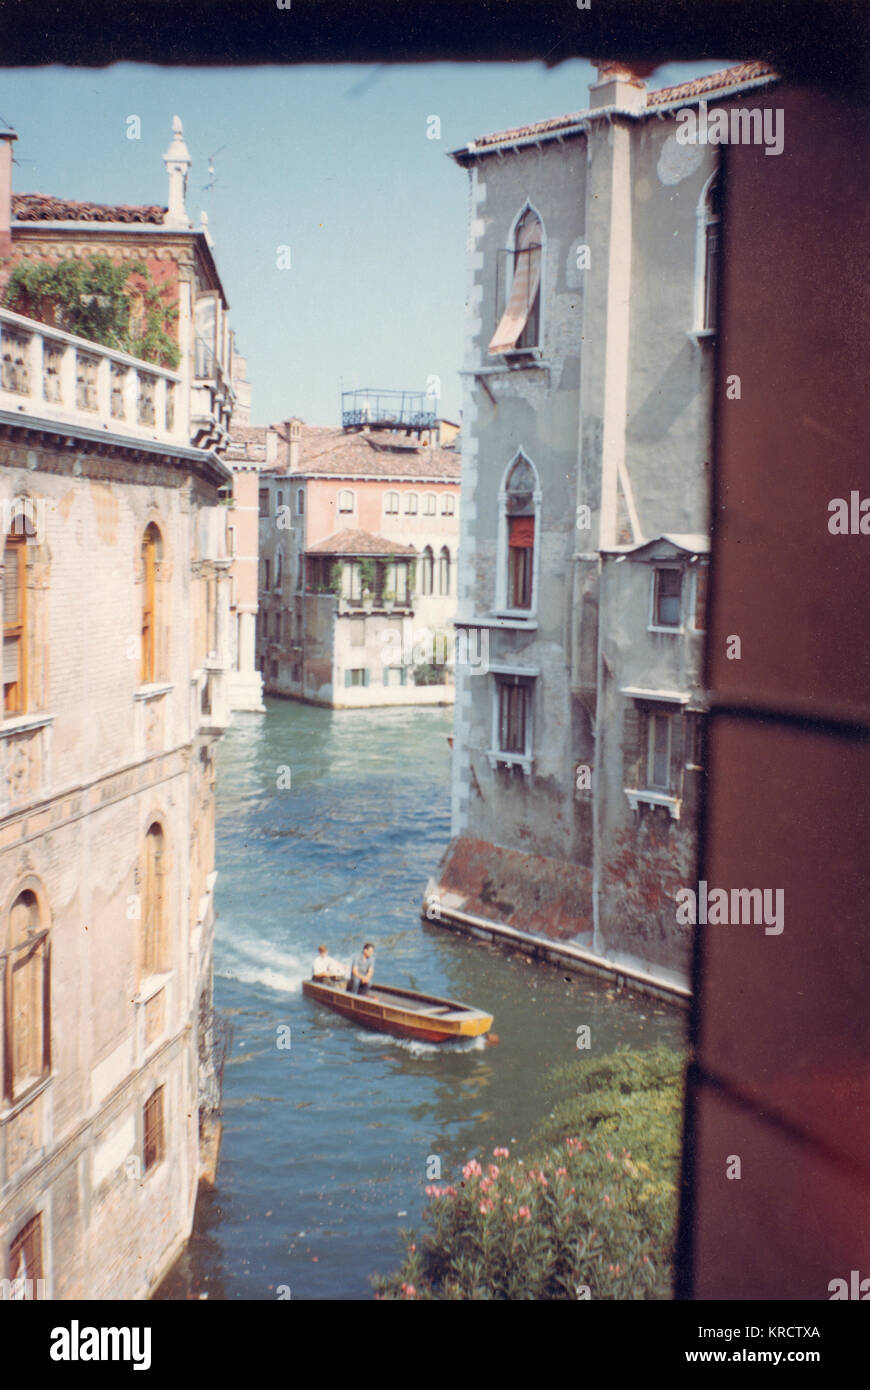 View of a canal through a window in Venice, Italy. Date: 1968 - Stock Image